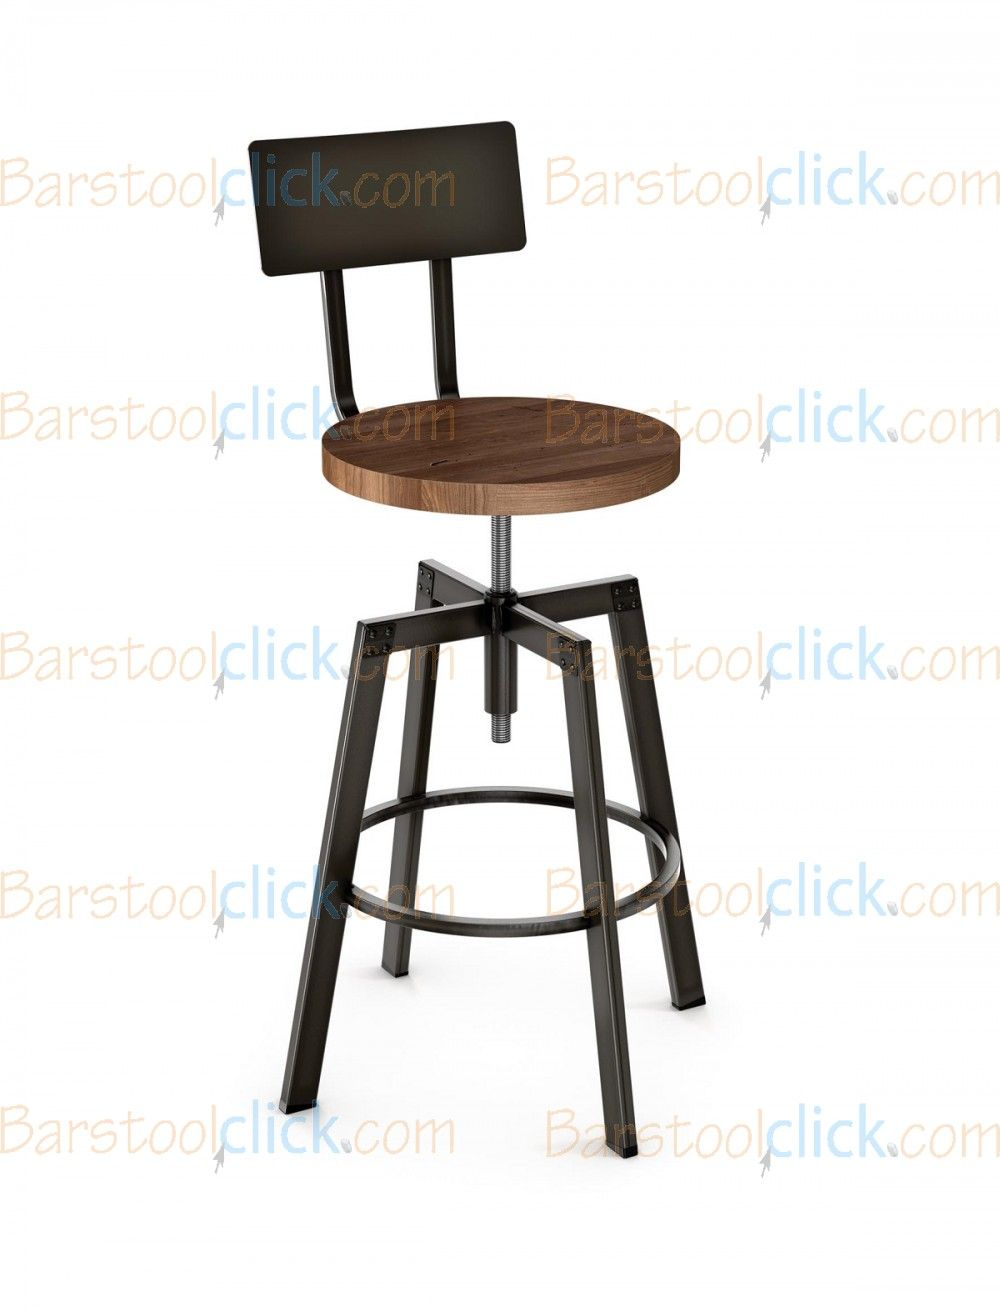 Amisco Architect Screw Adjustable Height Swivel Bar Stool With Distressed Wood Seat and Metal Backrest -  sc 1 st  Pinterest & Amisco Architect Screw Adjustable Height Swivel Bar Stool With ... islam-shia.org